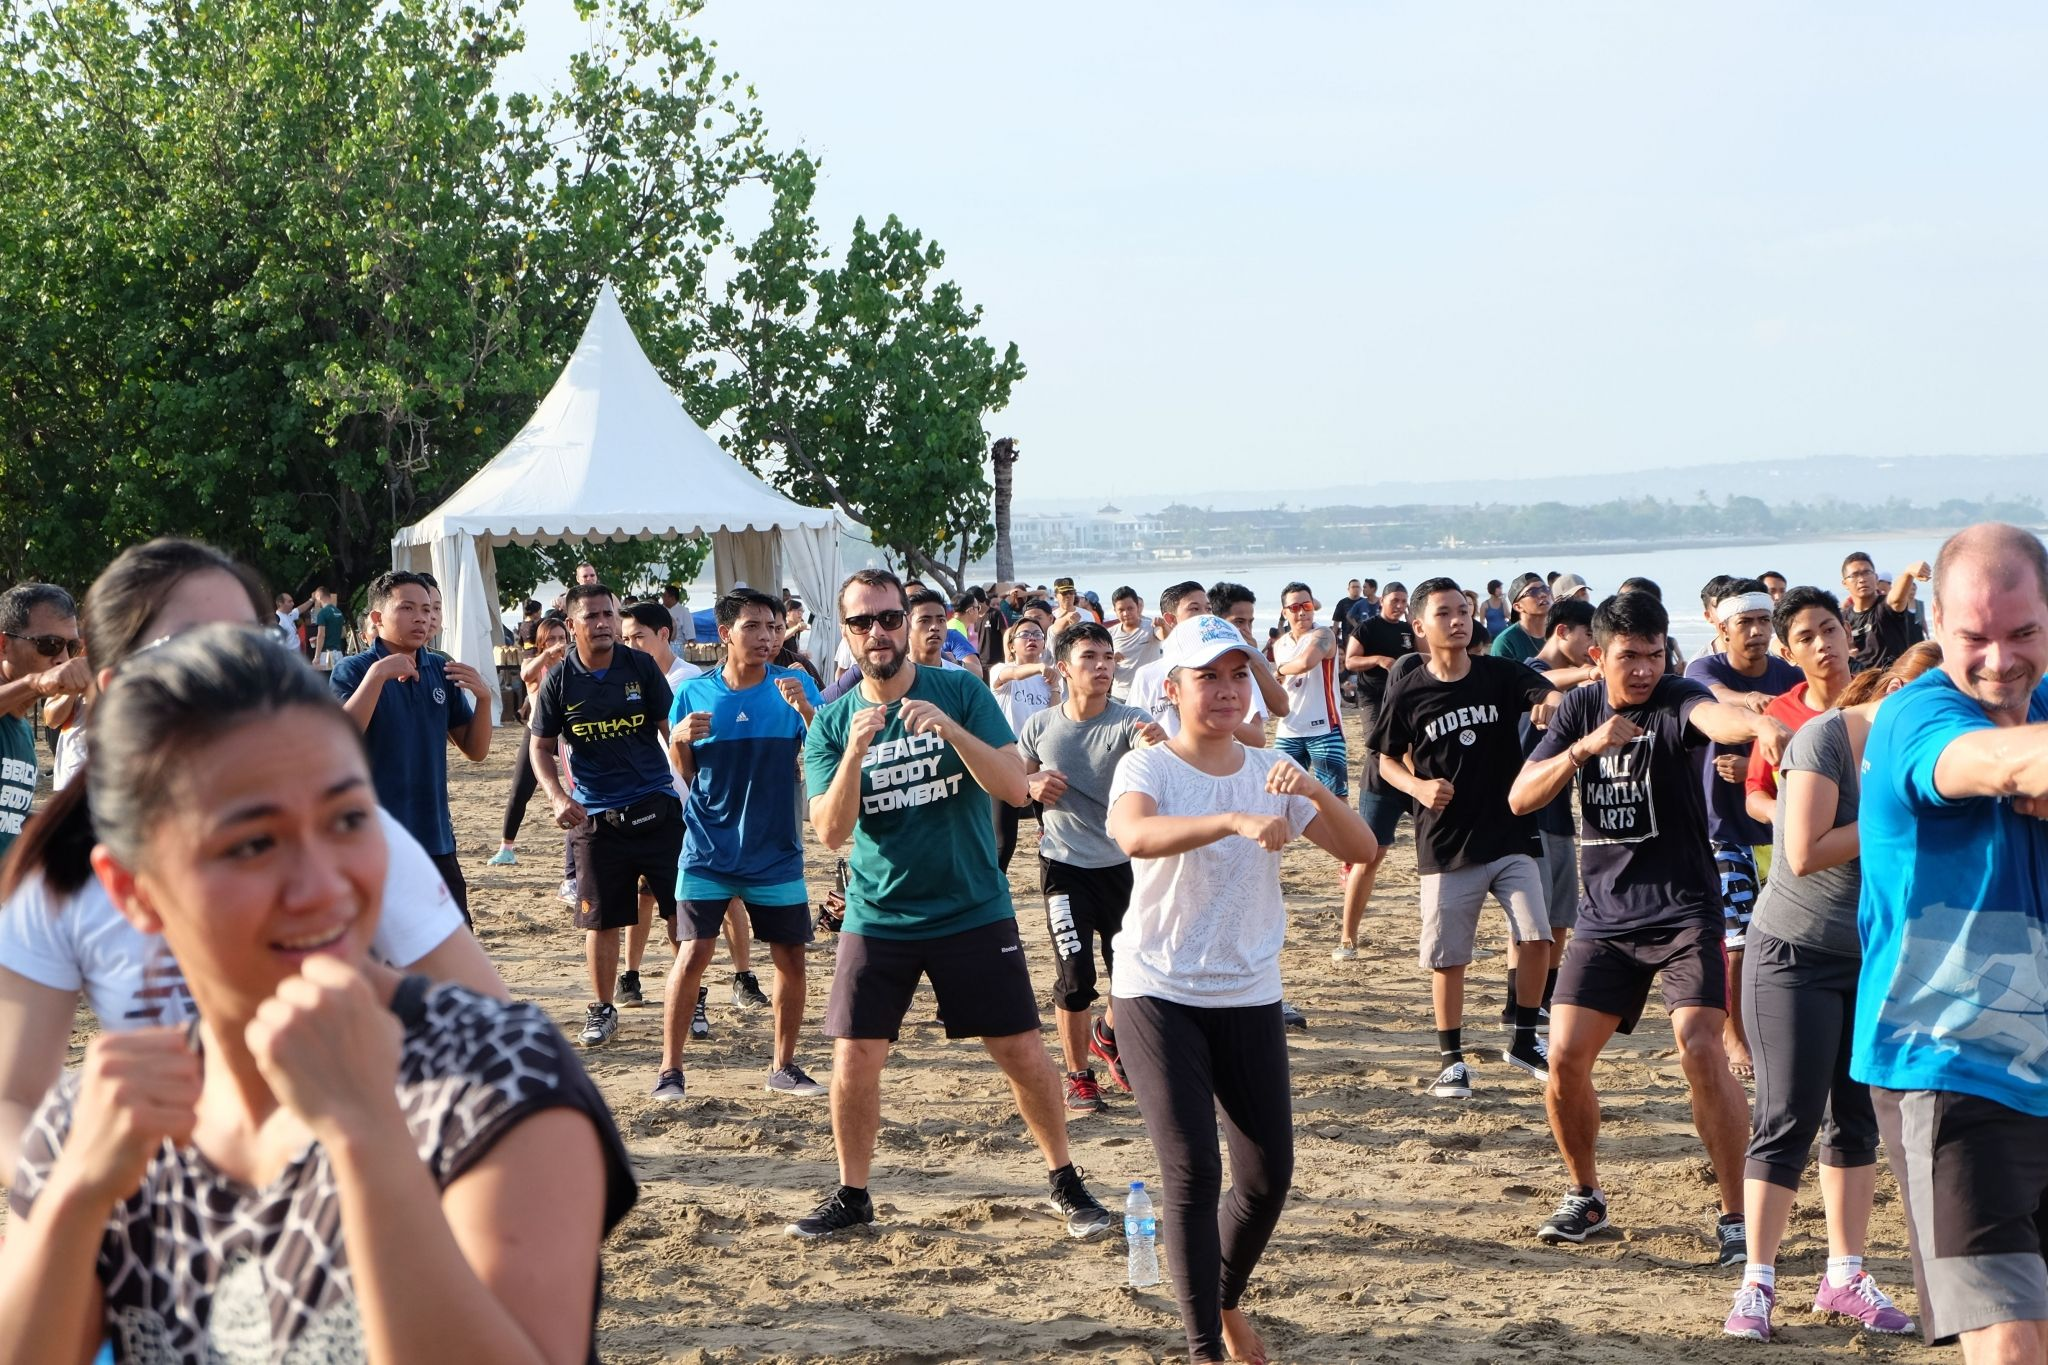 The participants of the Beach Body Combat - Sheraton Bali Kuta Resort